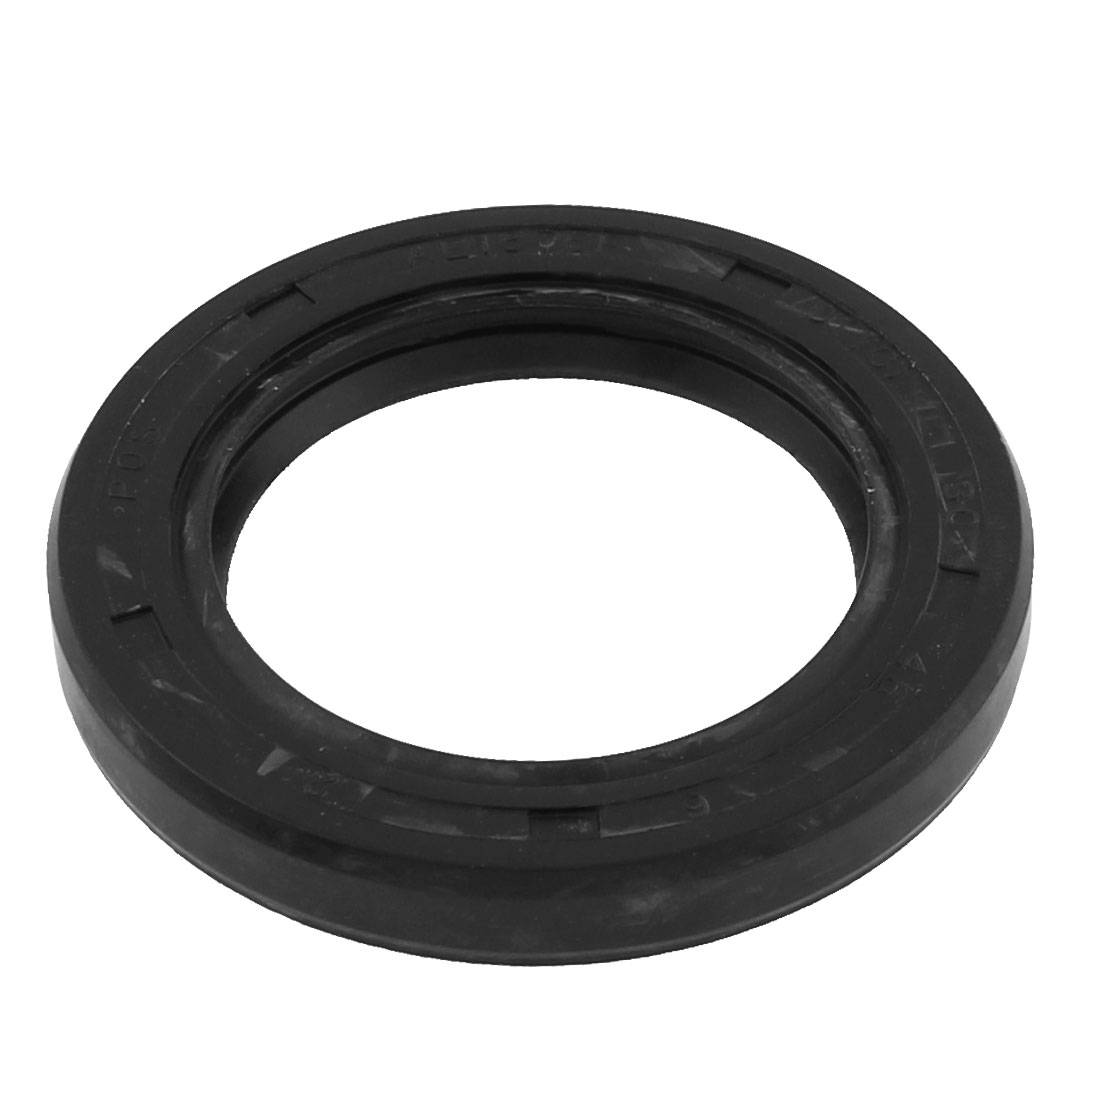 Gearbox Rubber Double Lipped Oil Sealing Washer Black 30mm x 45mm x 6mm